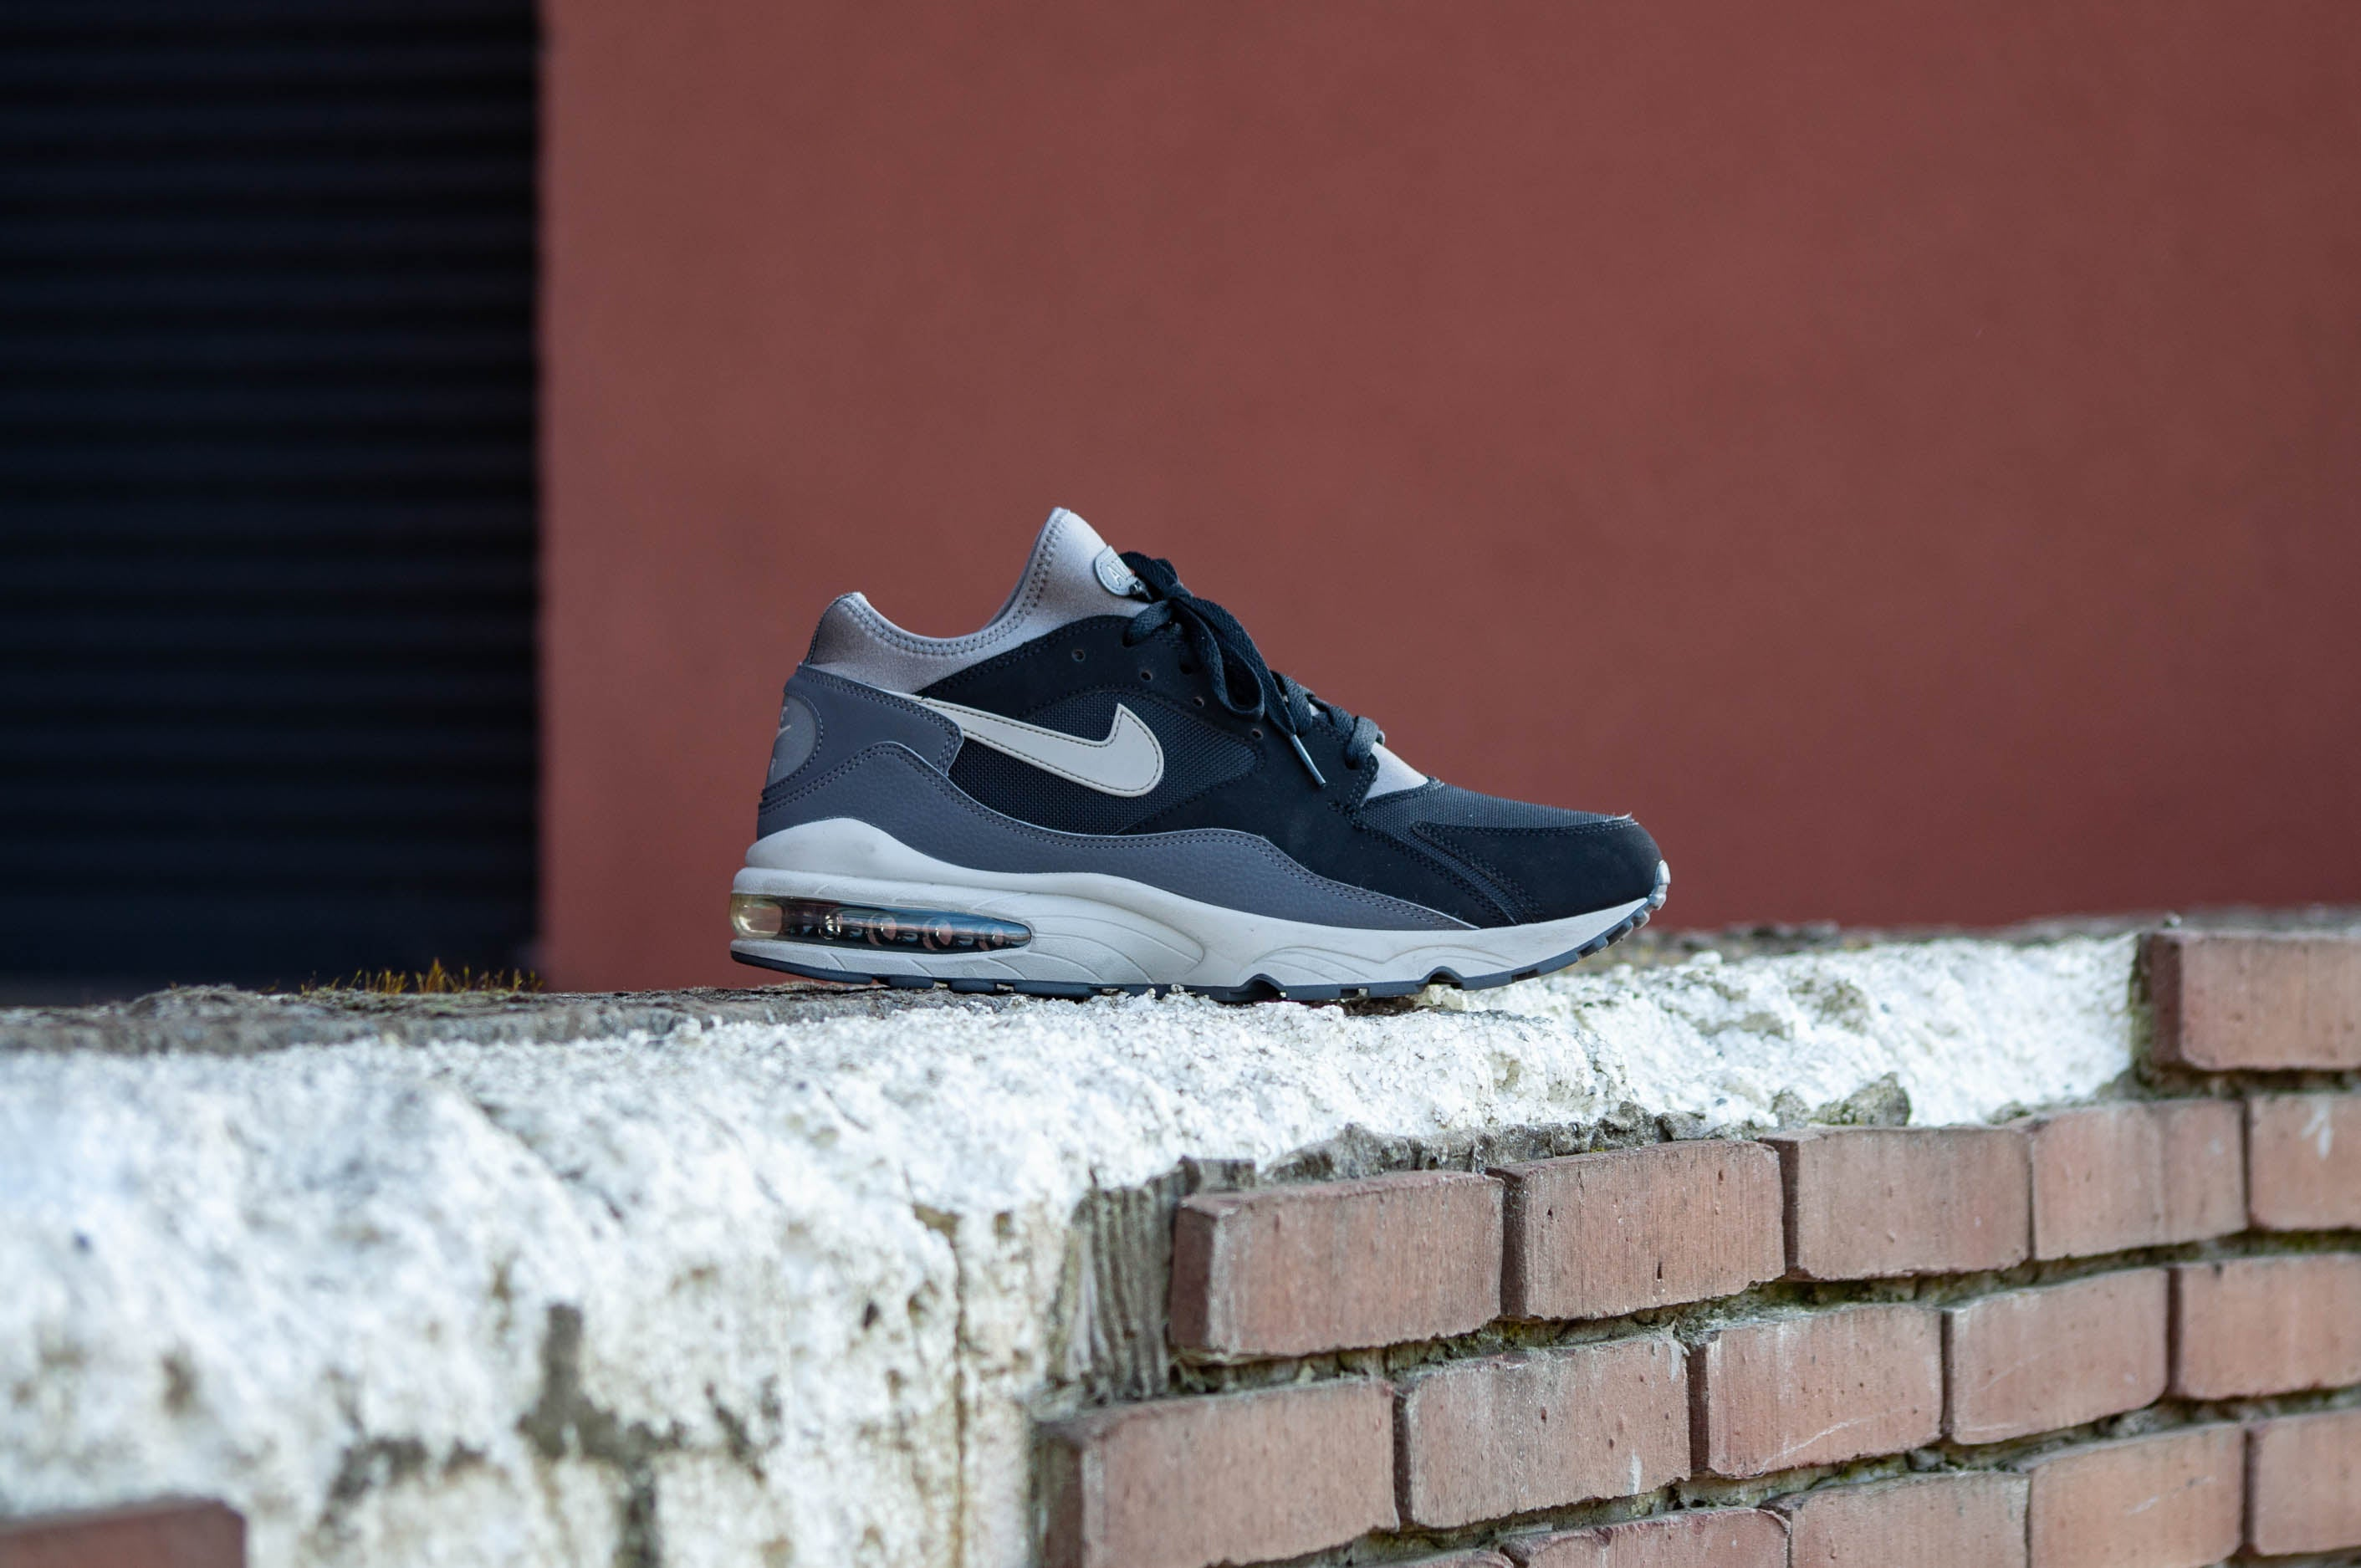 Nike Air Max 93 – LA BOITE COLLECTOR